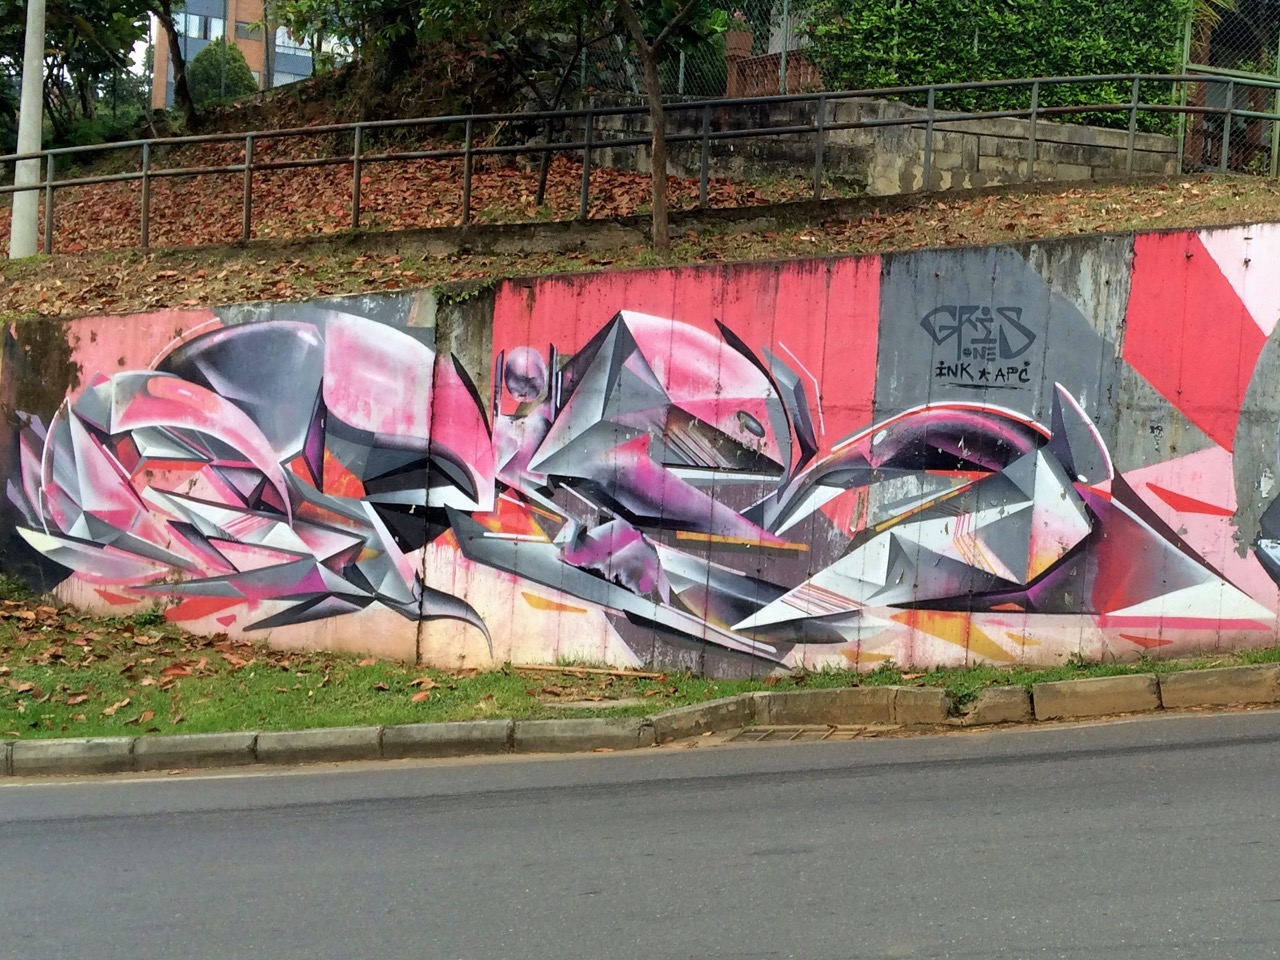 Gris One graffiti: left side